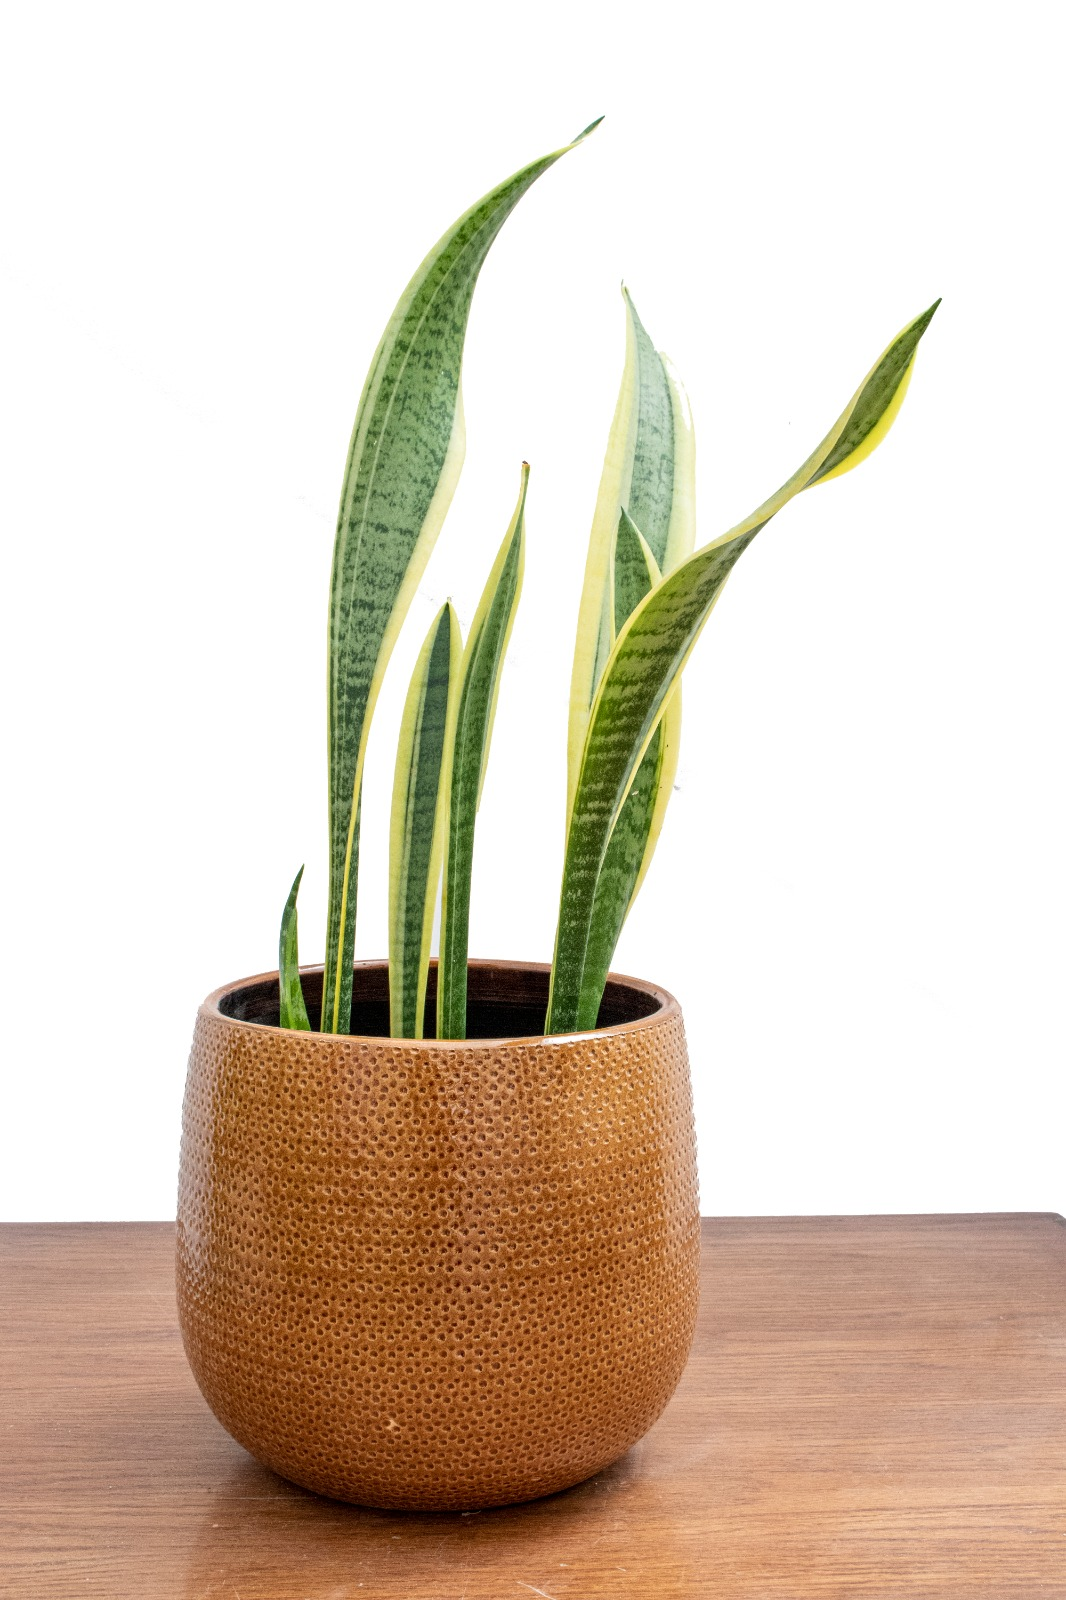 Sansevieria Trifasciata Office Plants